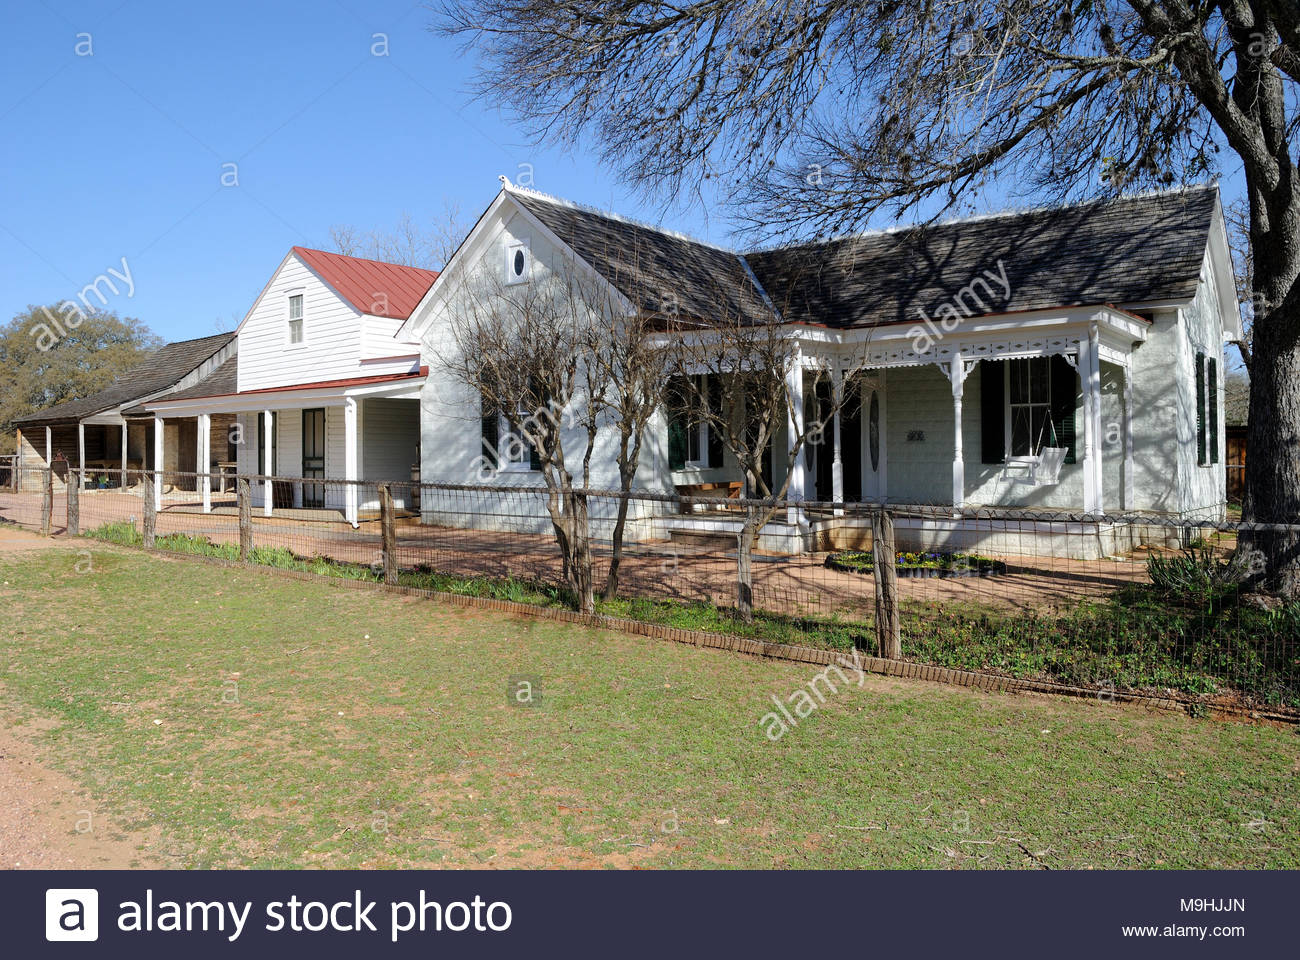 Farm house at Sauer Beckman Living History Farm at Lyndon B. Johnson State Park and Historic Site. Stonewall Texas. Texas Hill Country west of Austin. - Stock Image